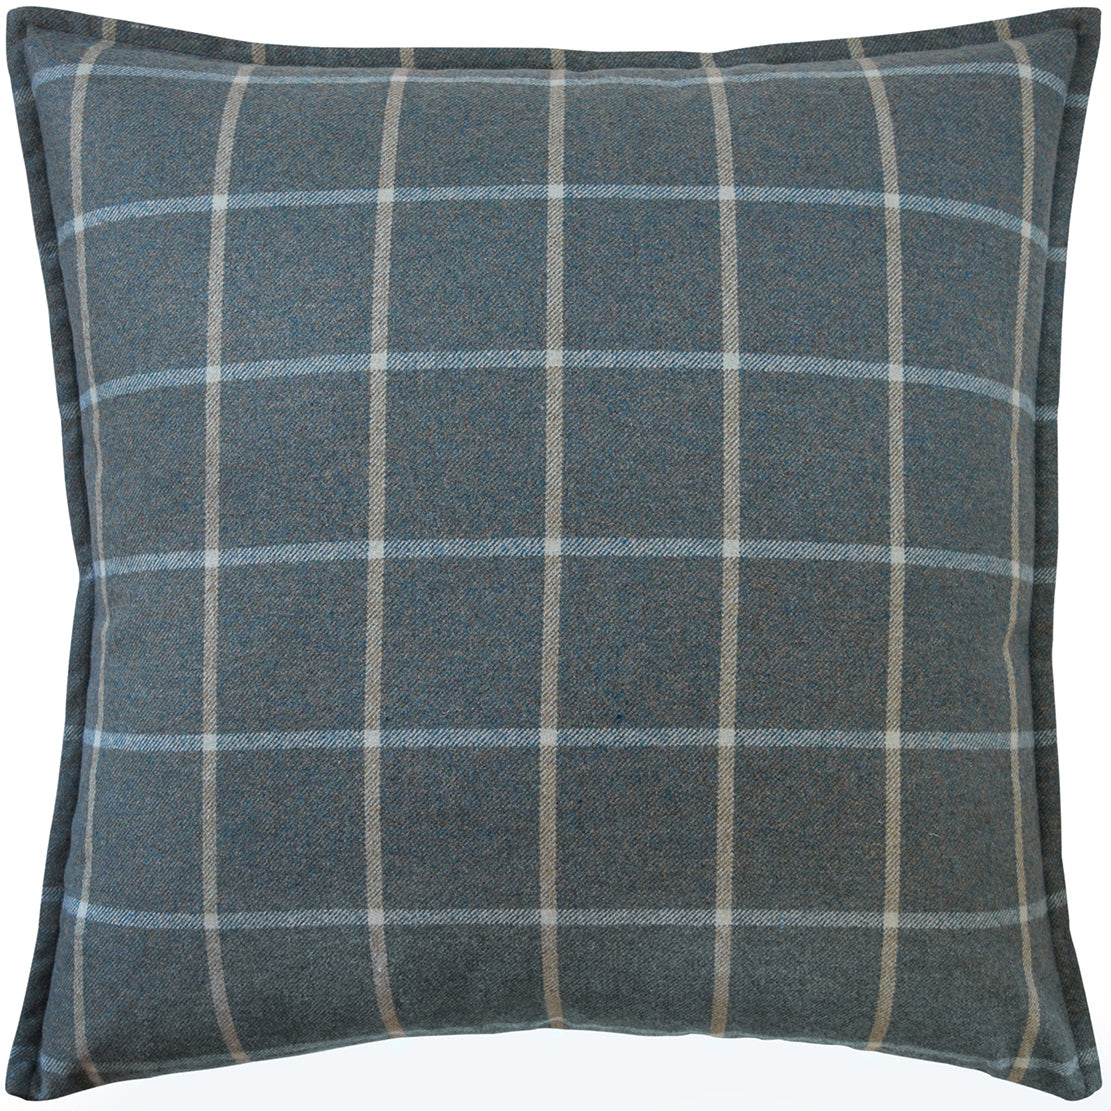 Ryan Studio Pillows Fife, Cove